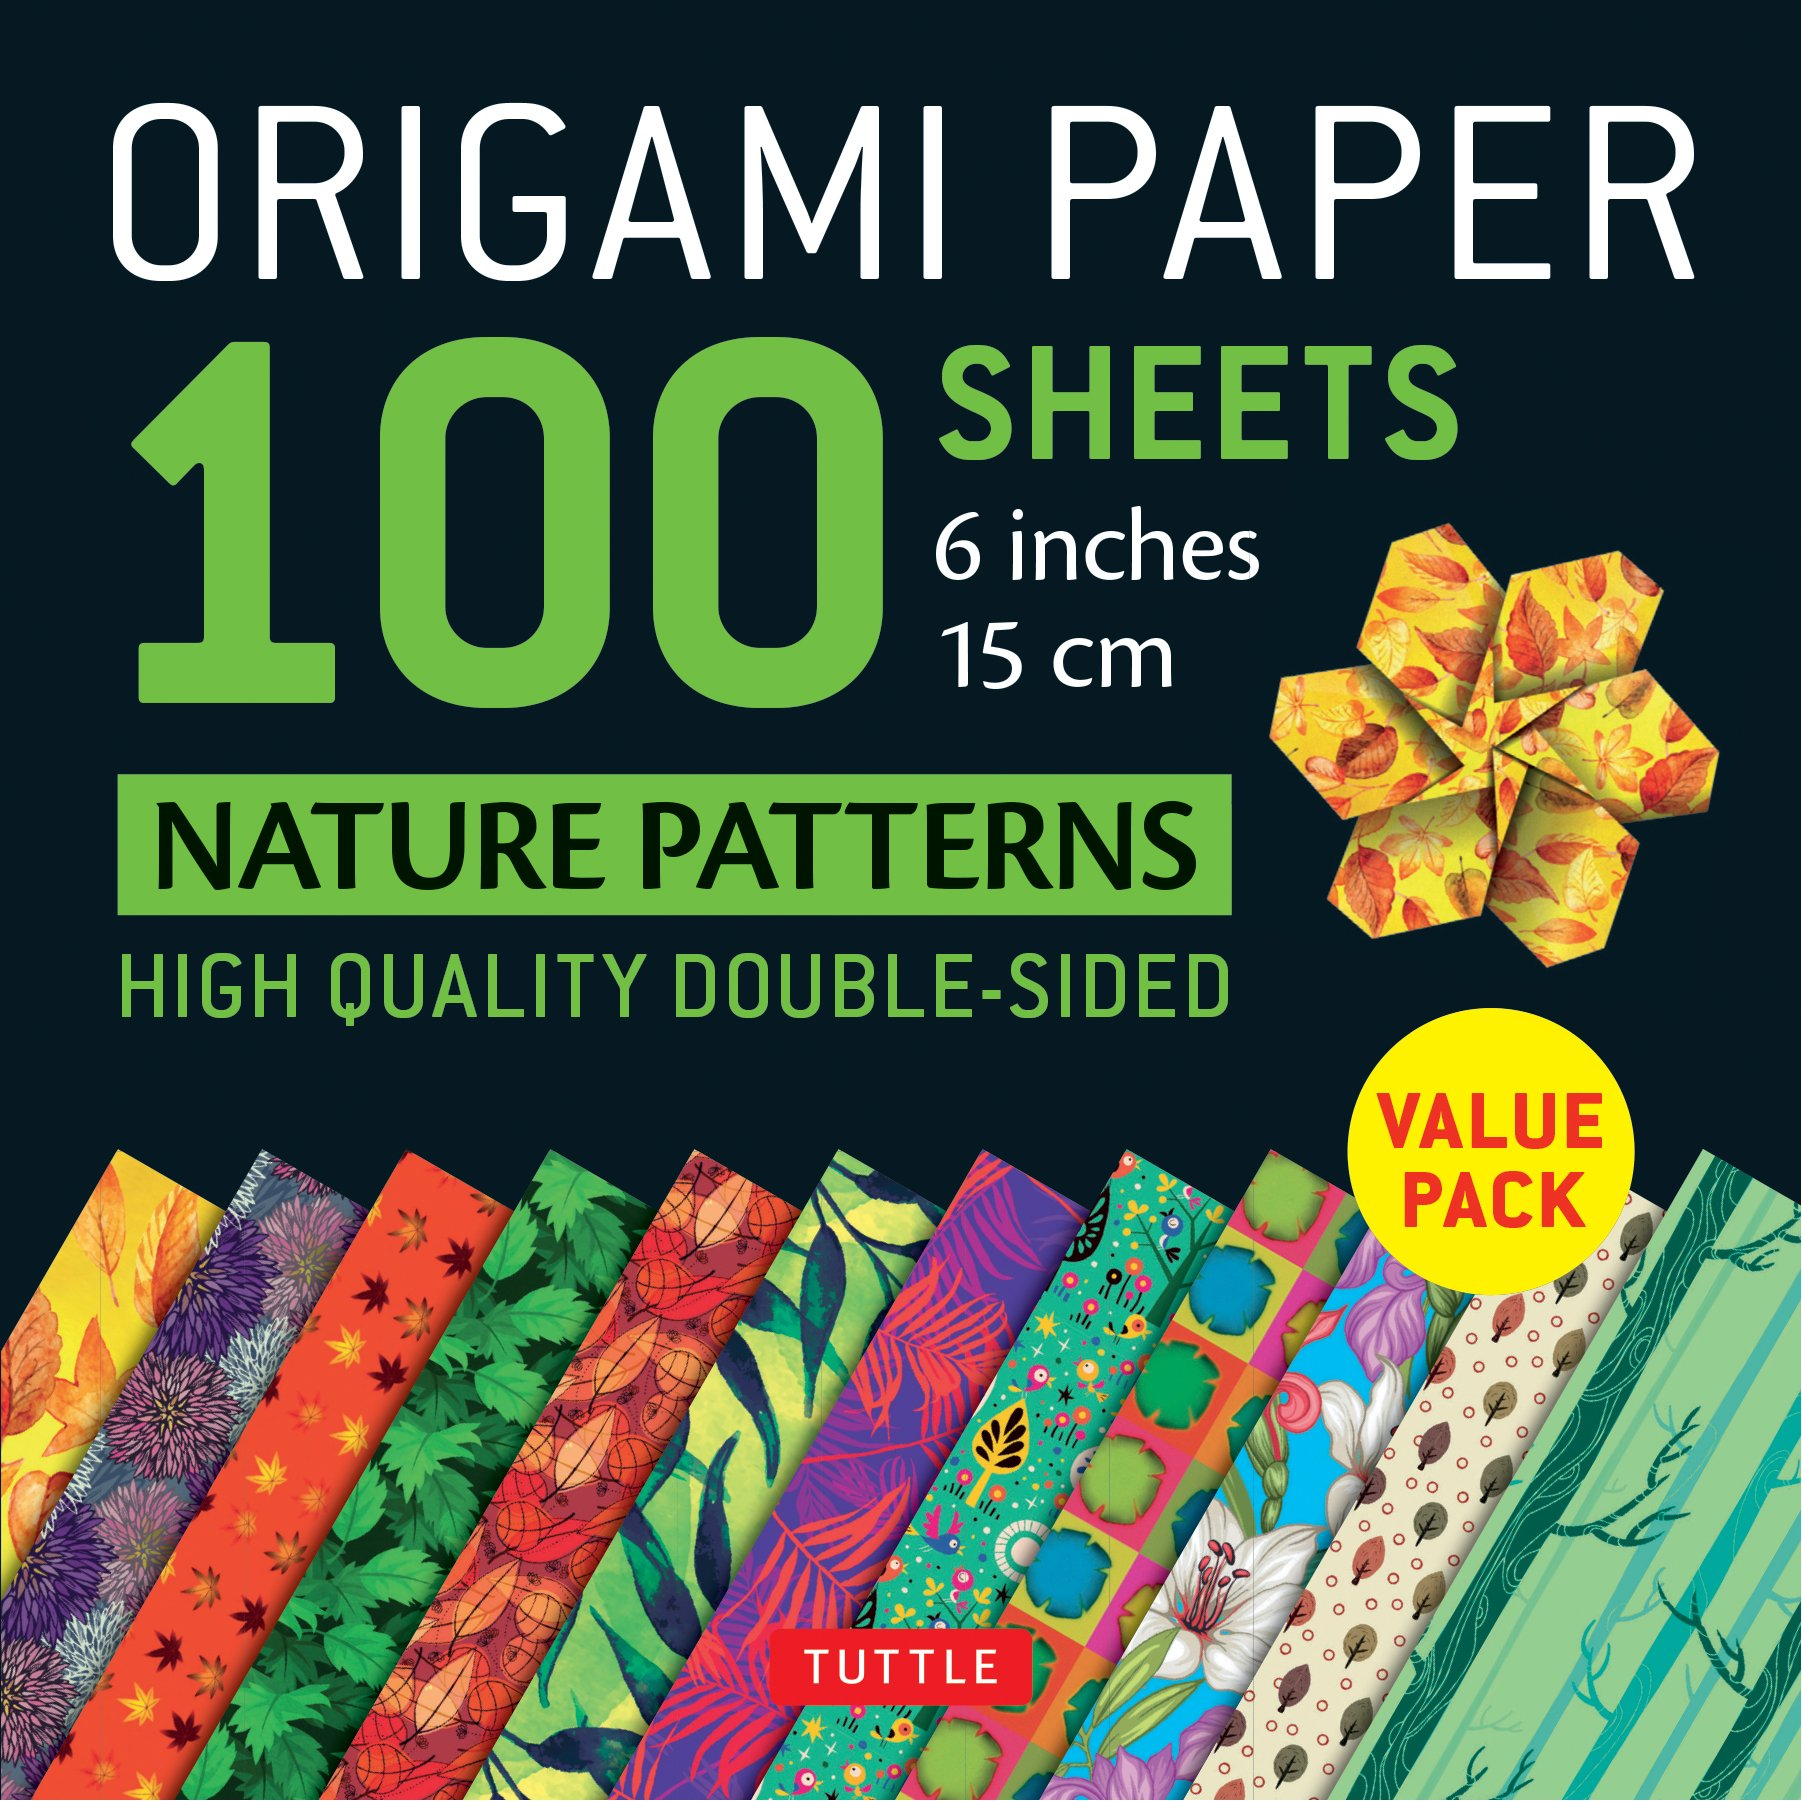 Origami Paper 100 Sheets Nature Patterns 6 Inch 15 Cm Origami Paper